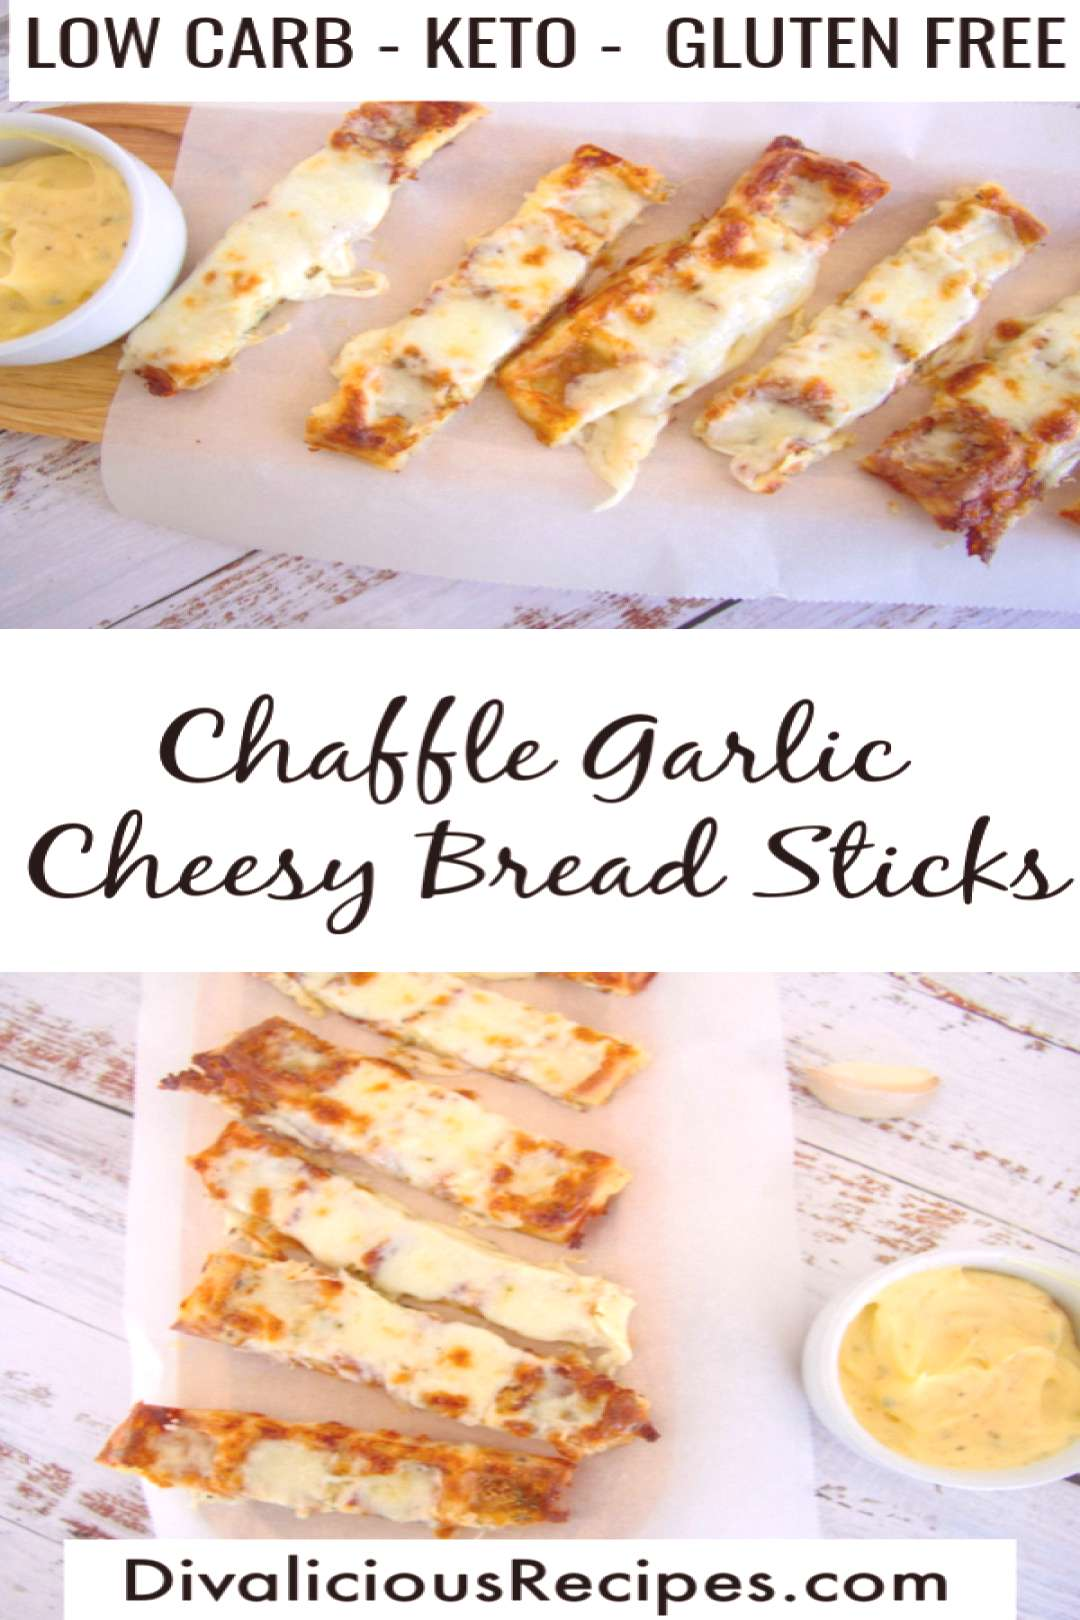 Easy keto chaffle garlic cheesy bread sticks are a quick and easy appetizer or snack. Ready in unde